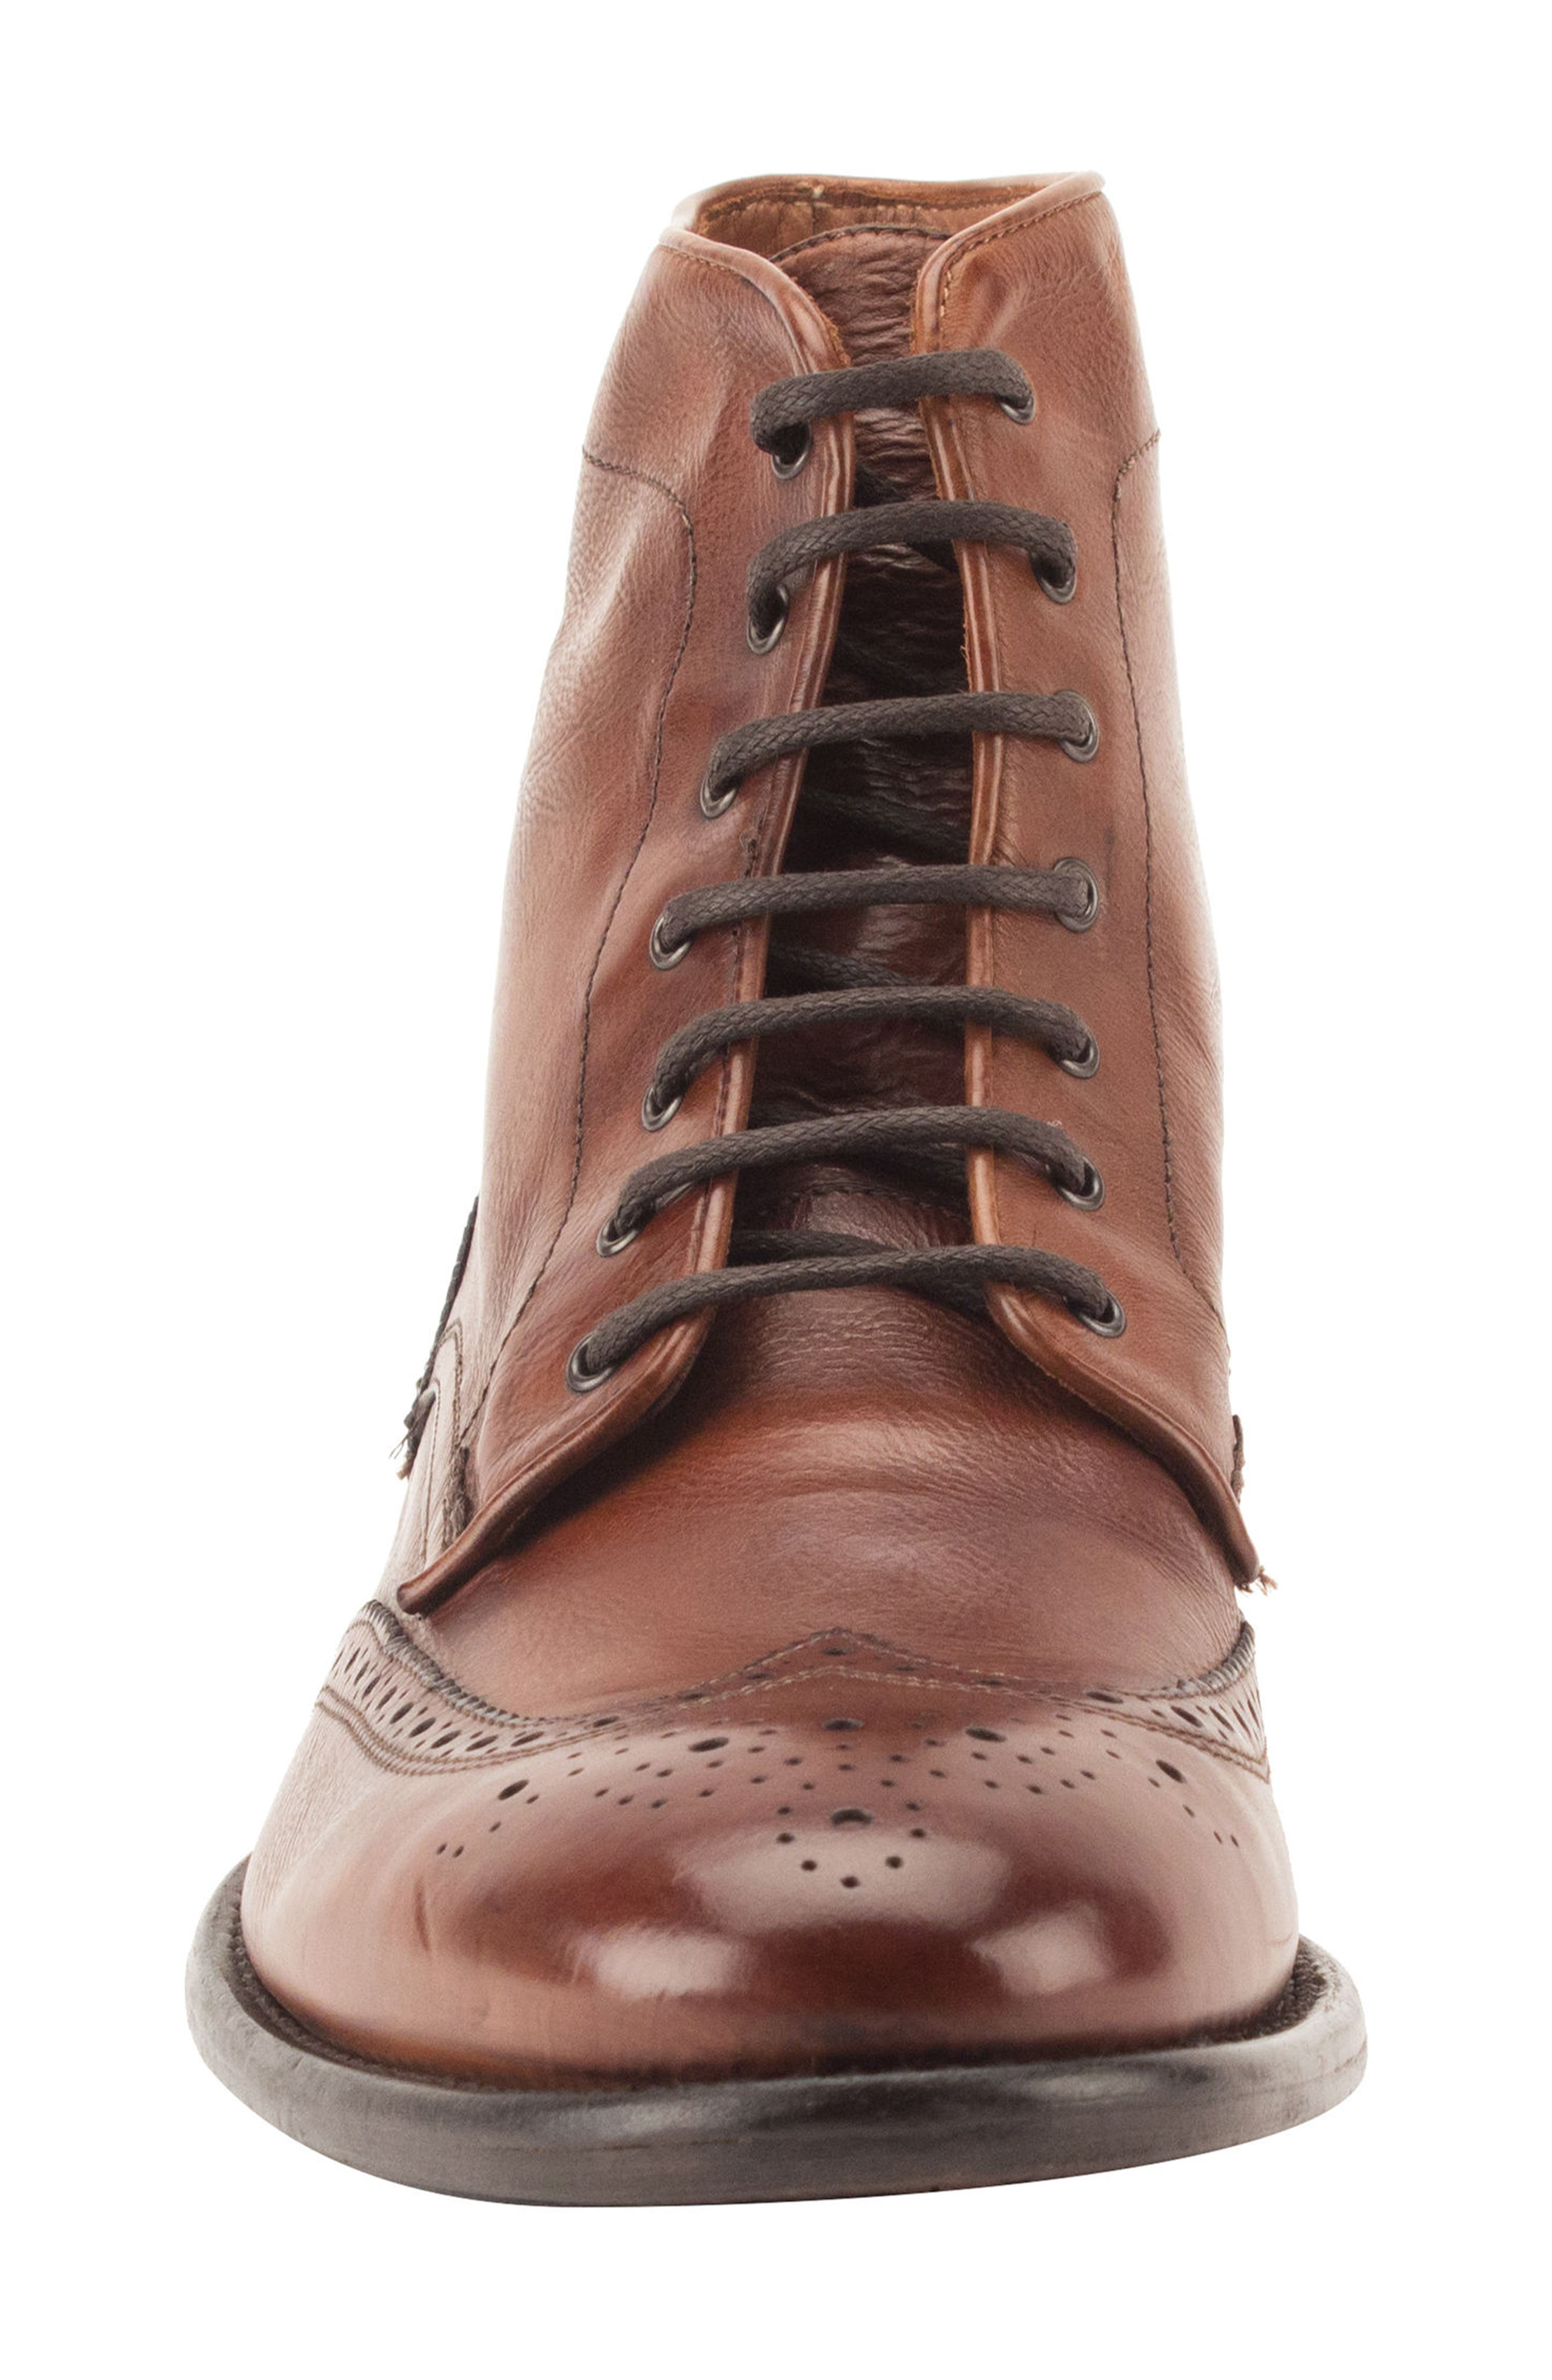 Maxfield Wingtip Boot,                             Alternate thumbnail 4, color,                             Cognac Leather